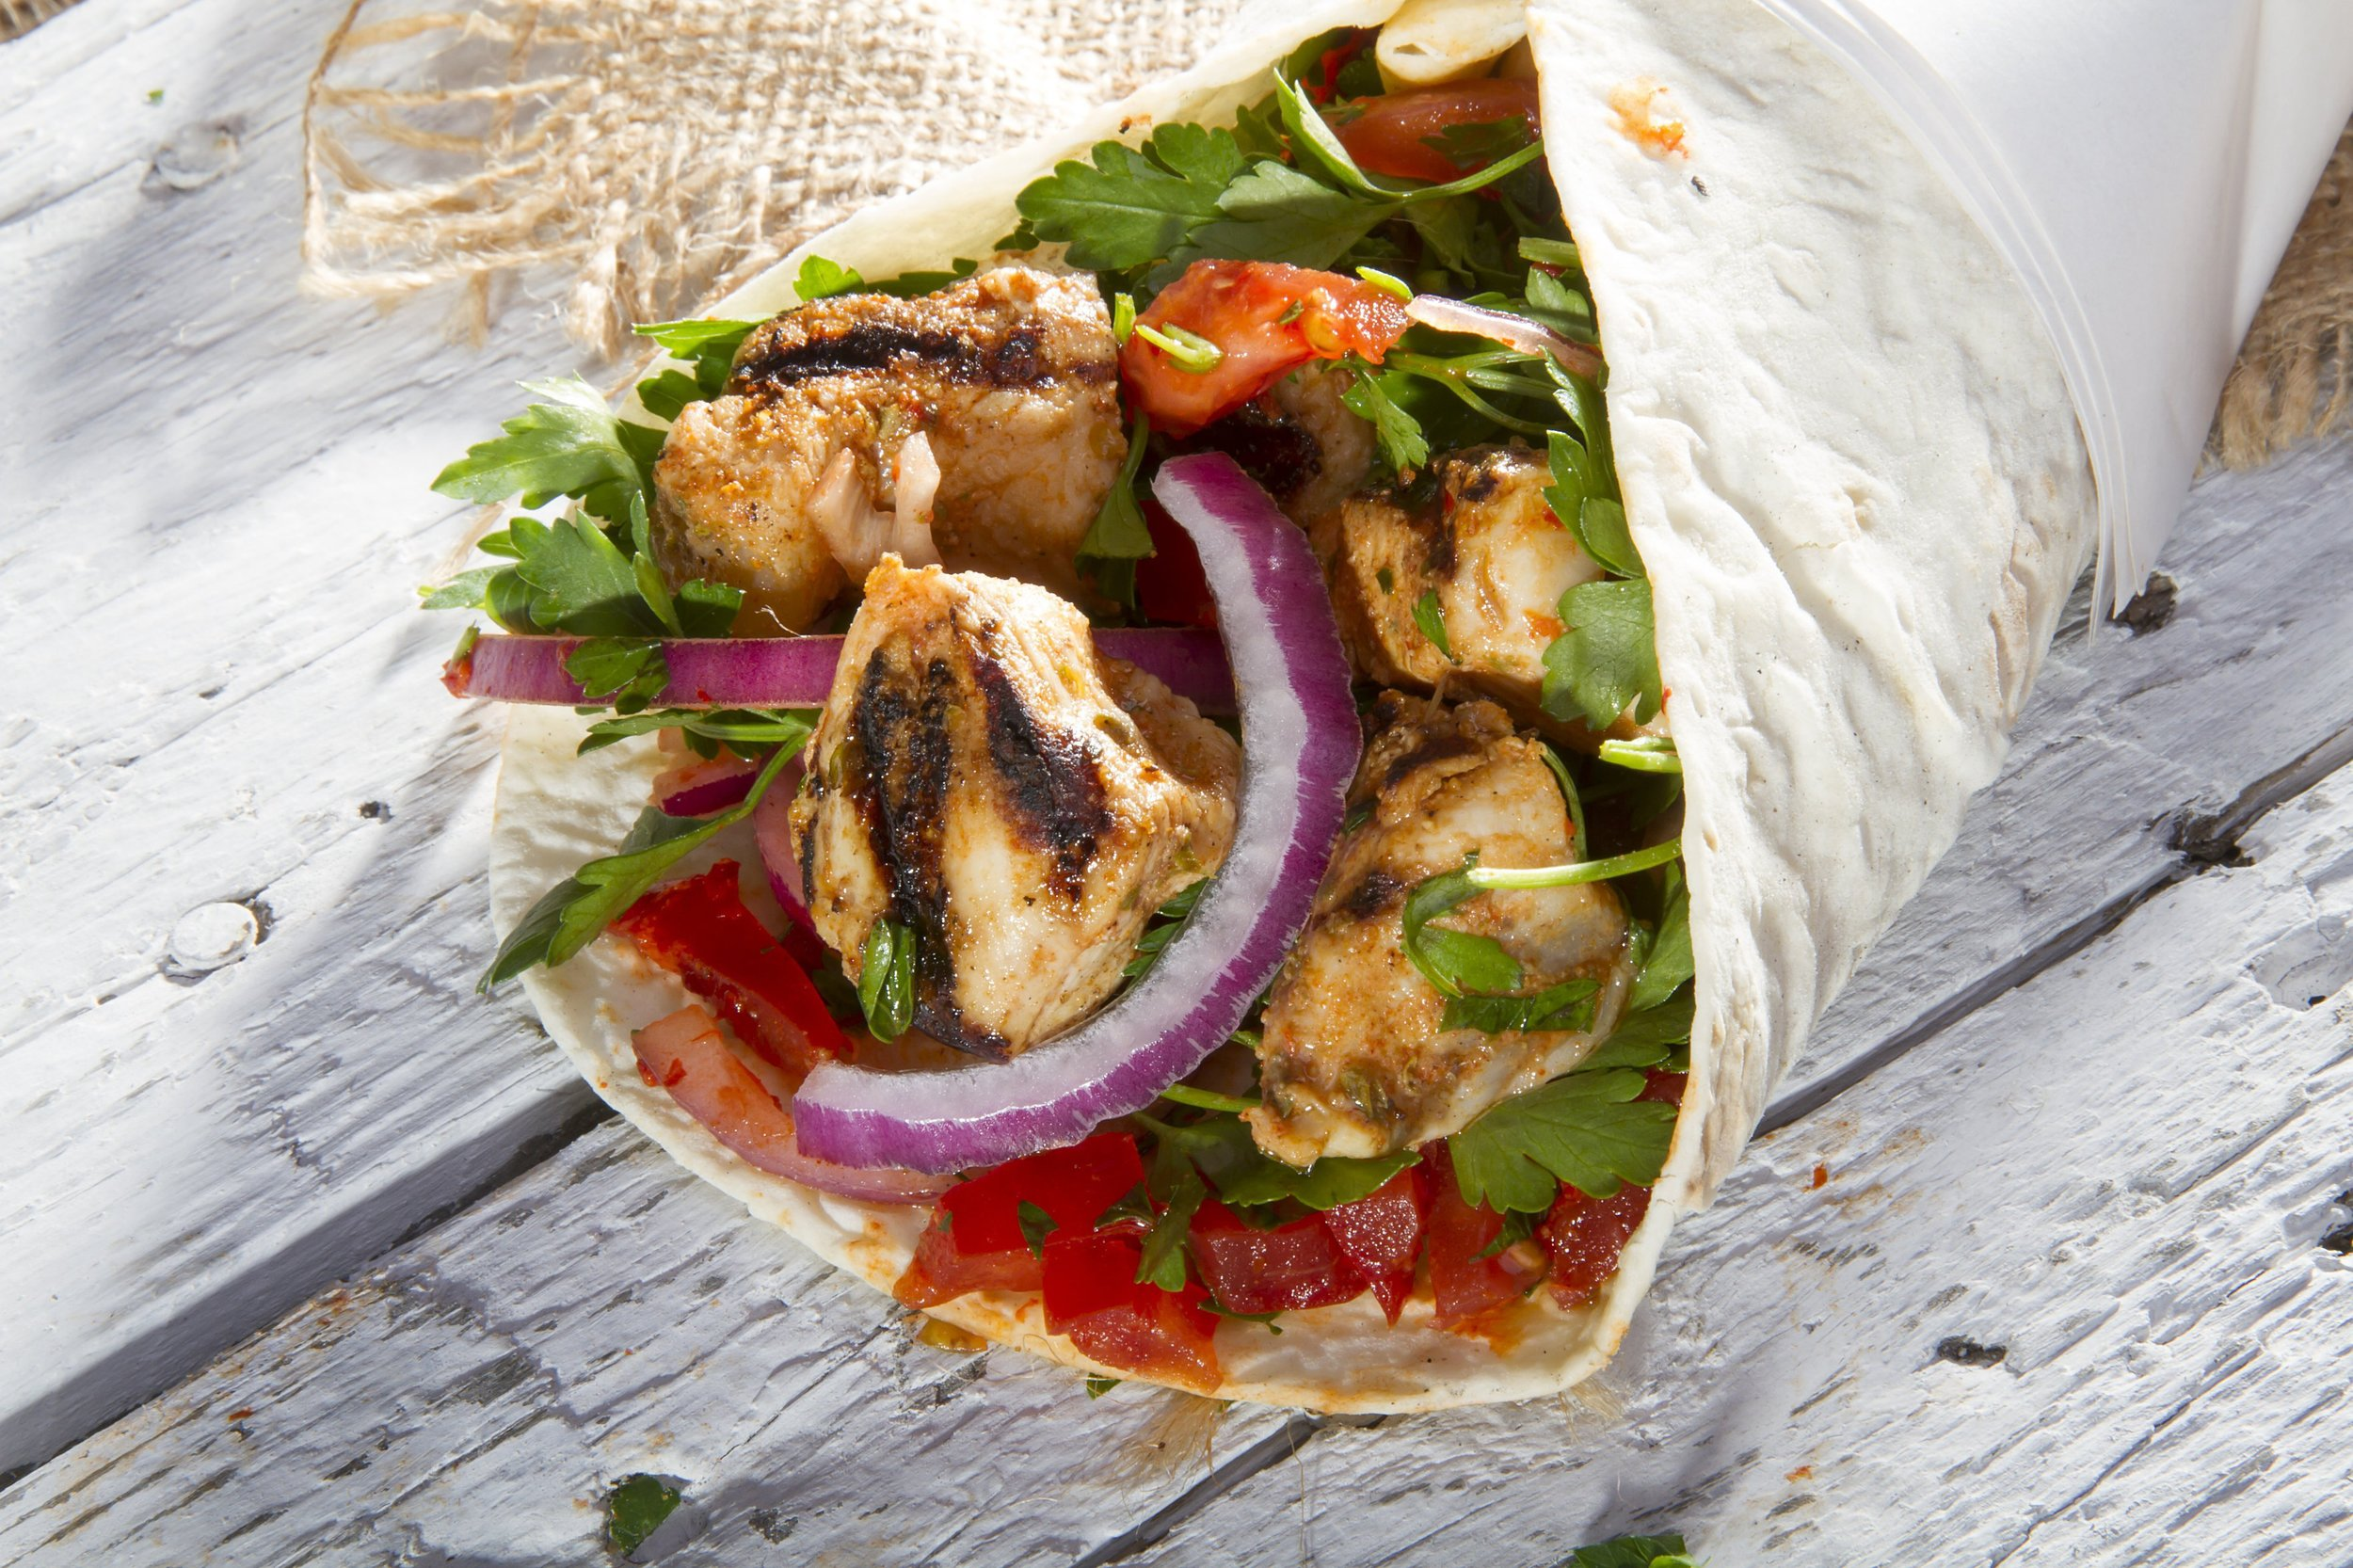 Chicken fajita wrap with onions and peppers